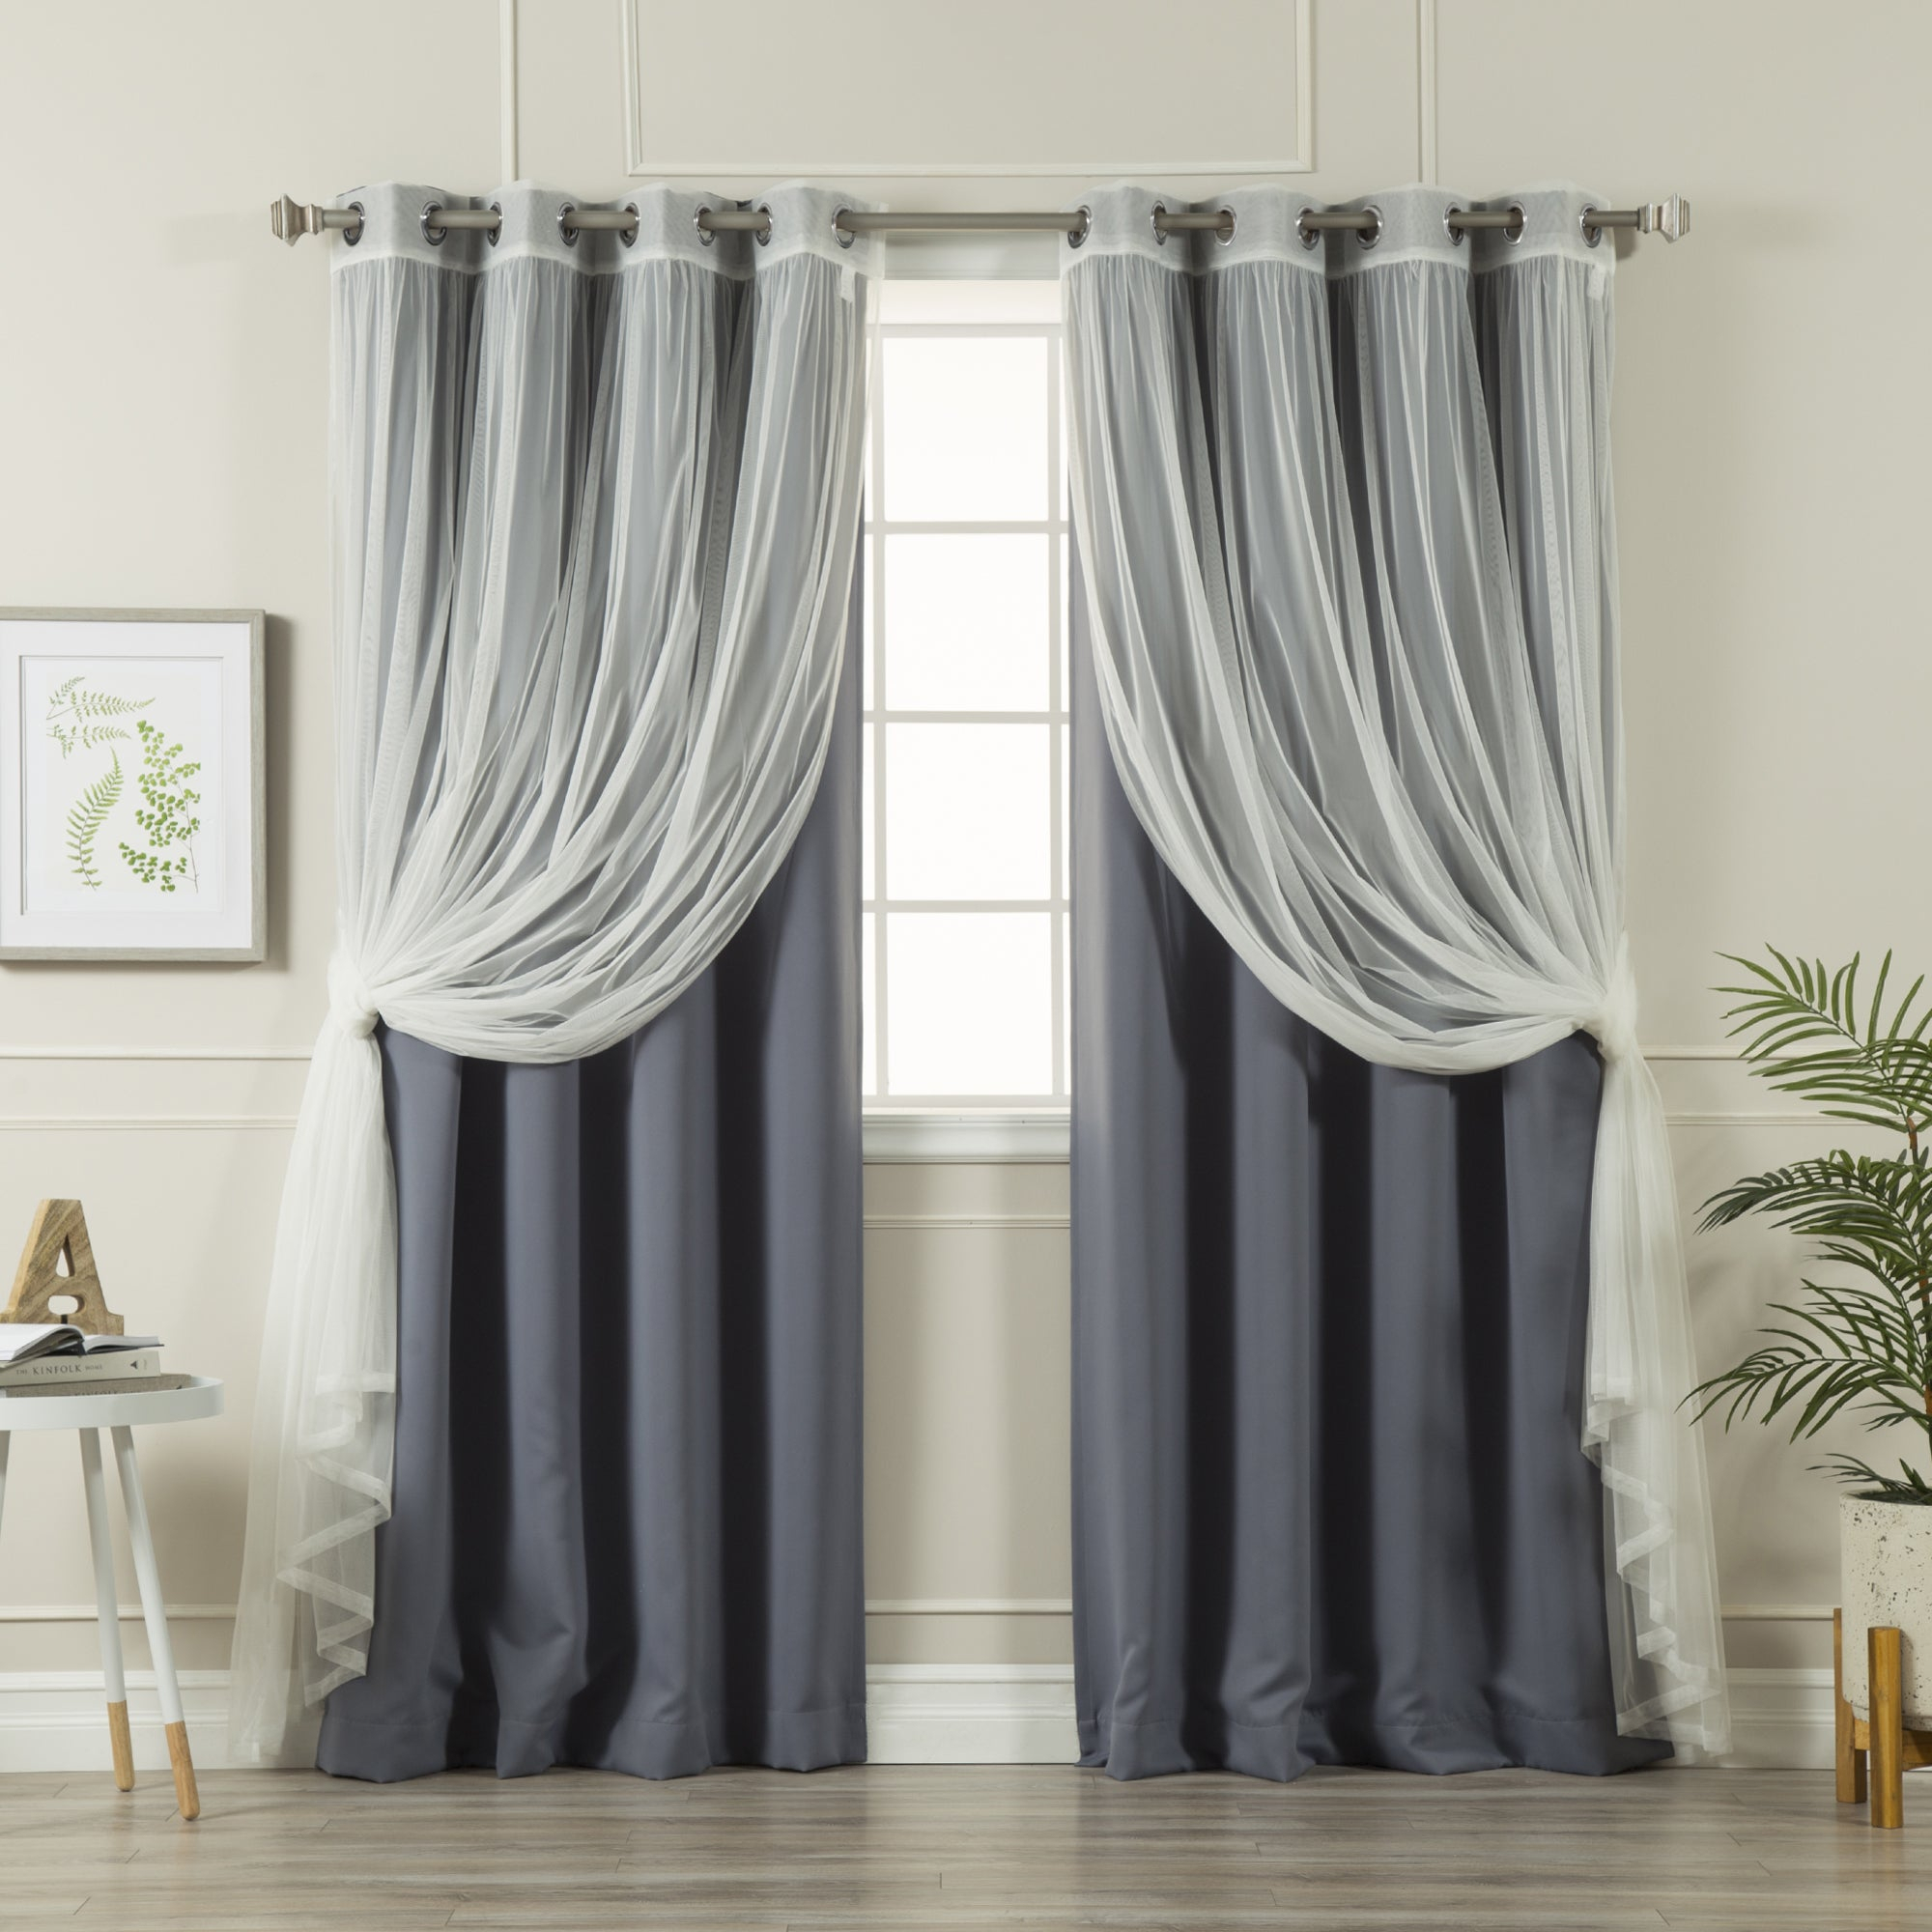 Aurora Home Mix And Match Blackout Tulle Lace Sheer 4 Piece Curtain Panel Set Pertaining To Mix And Match Blackout Tulle Lace Sheer Curtain Panel Sets (View 5 of 20)